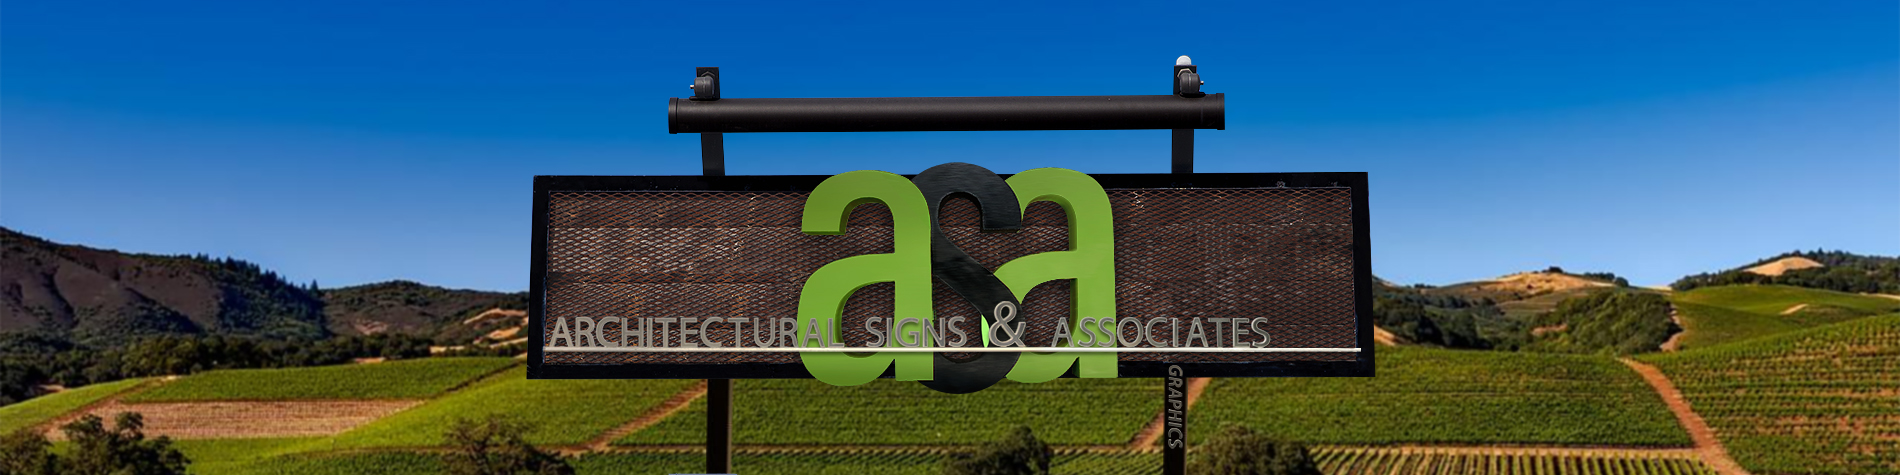 ASA Graphics sign